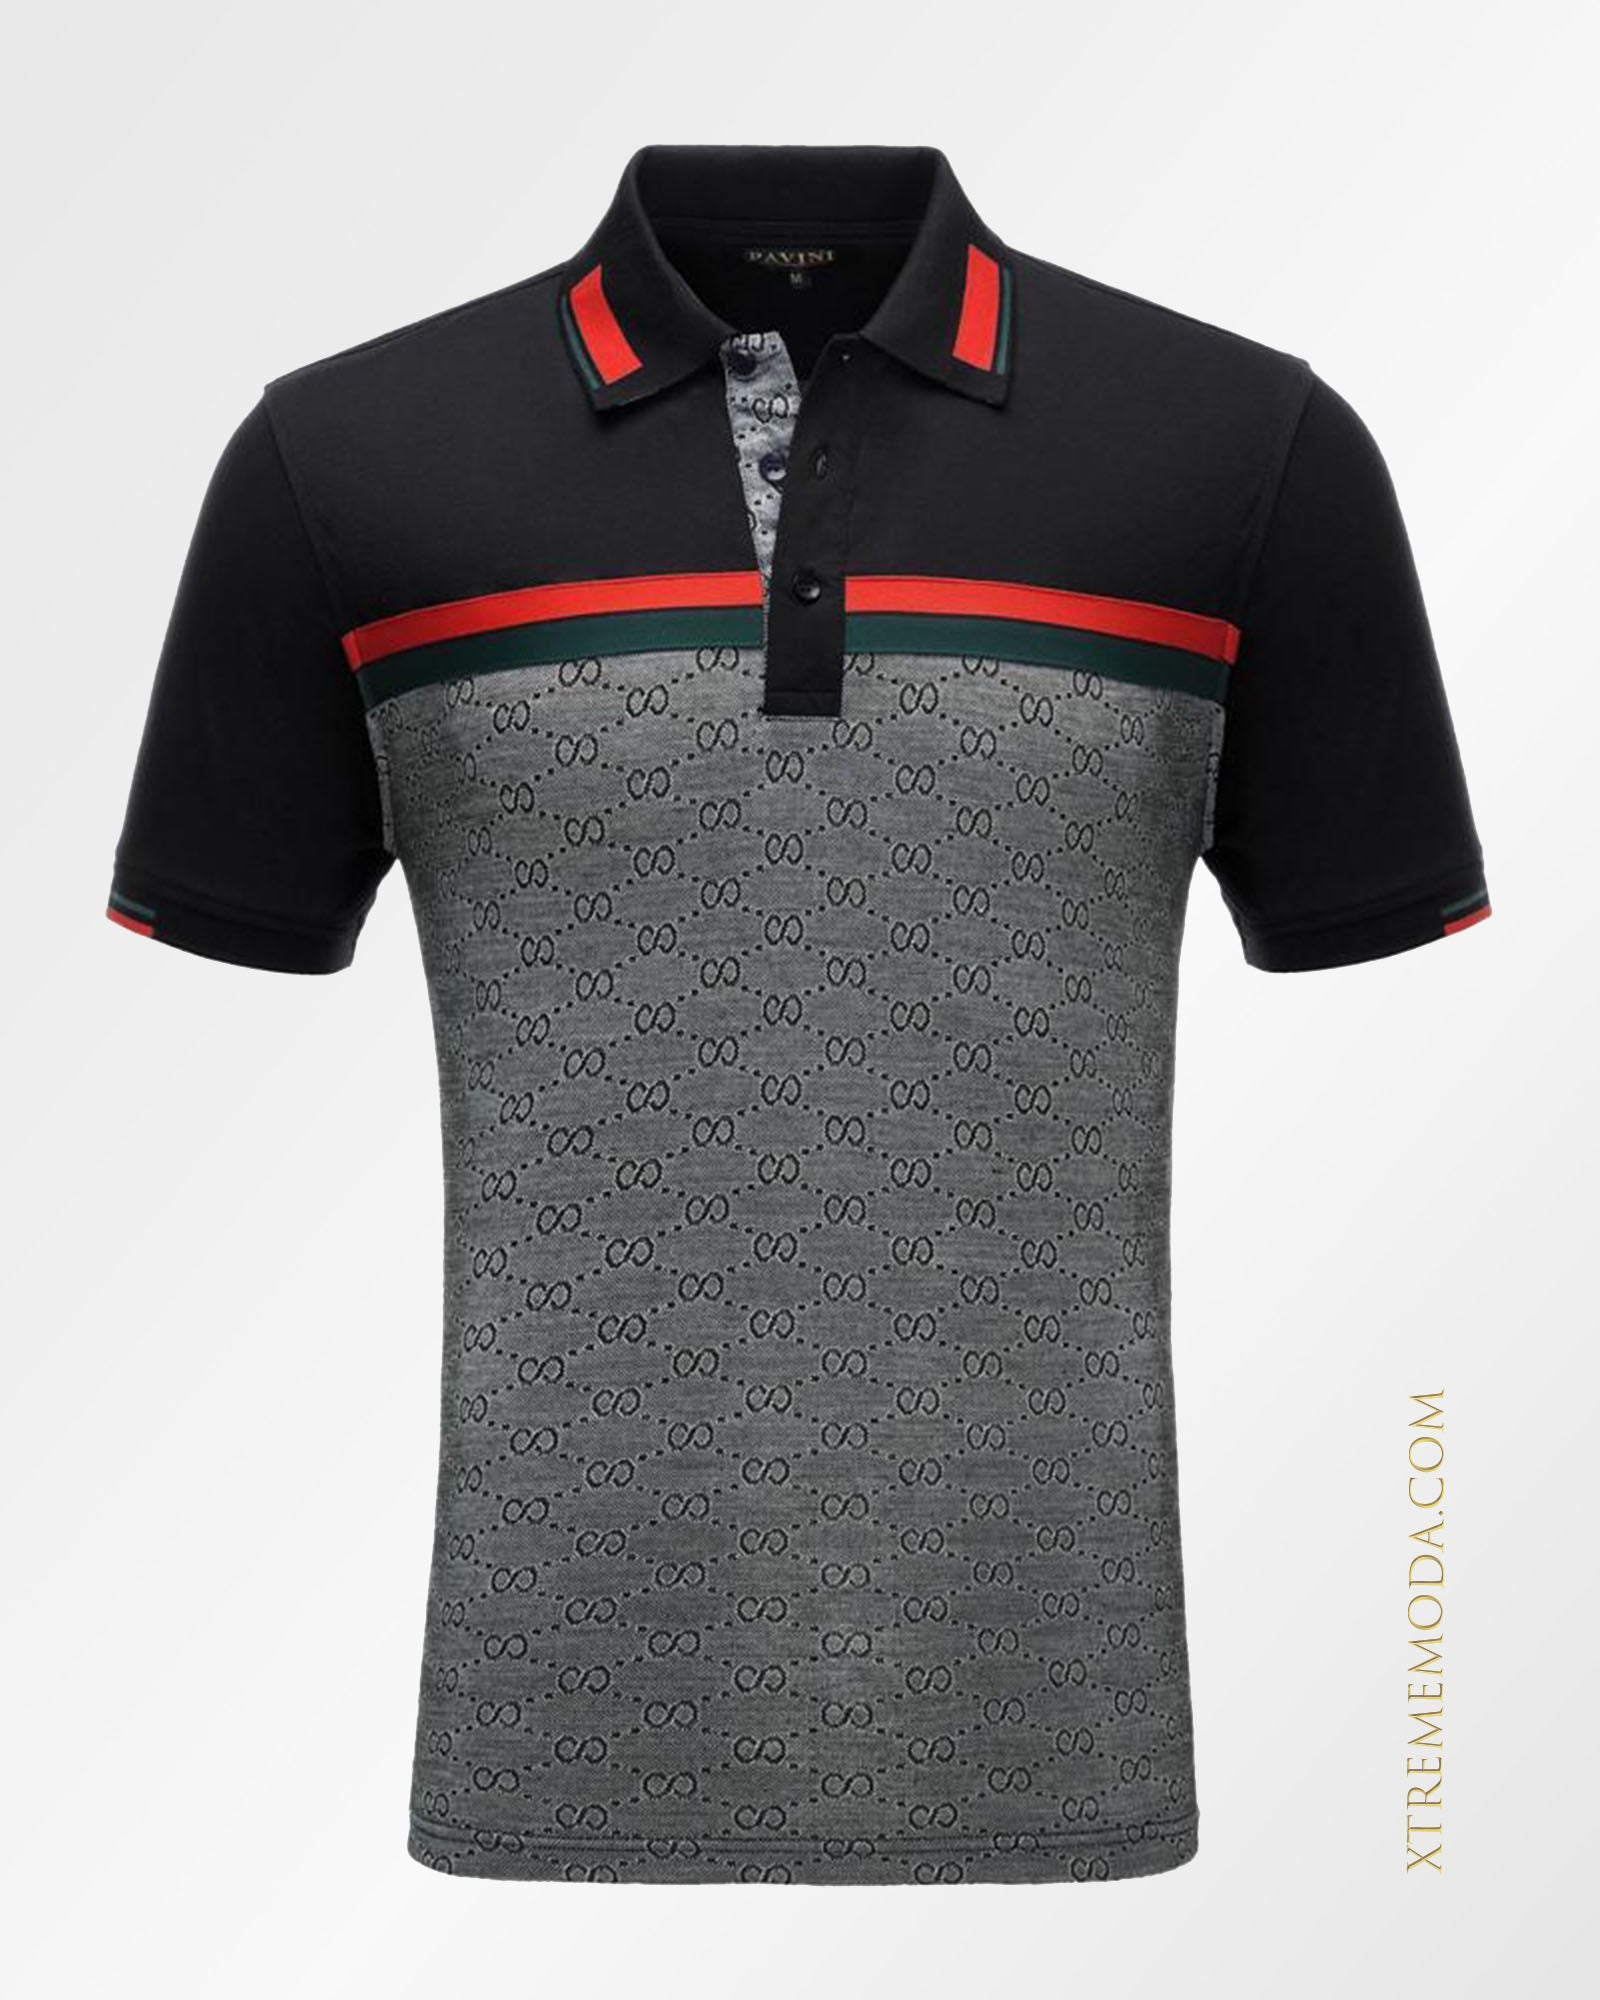 8 pattern polo shirt Black